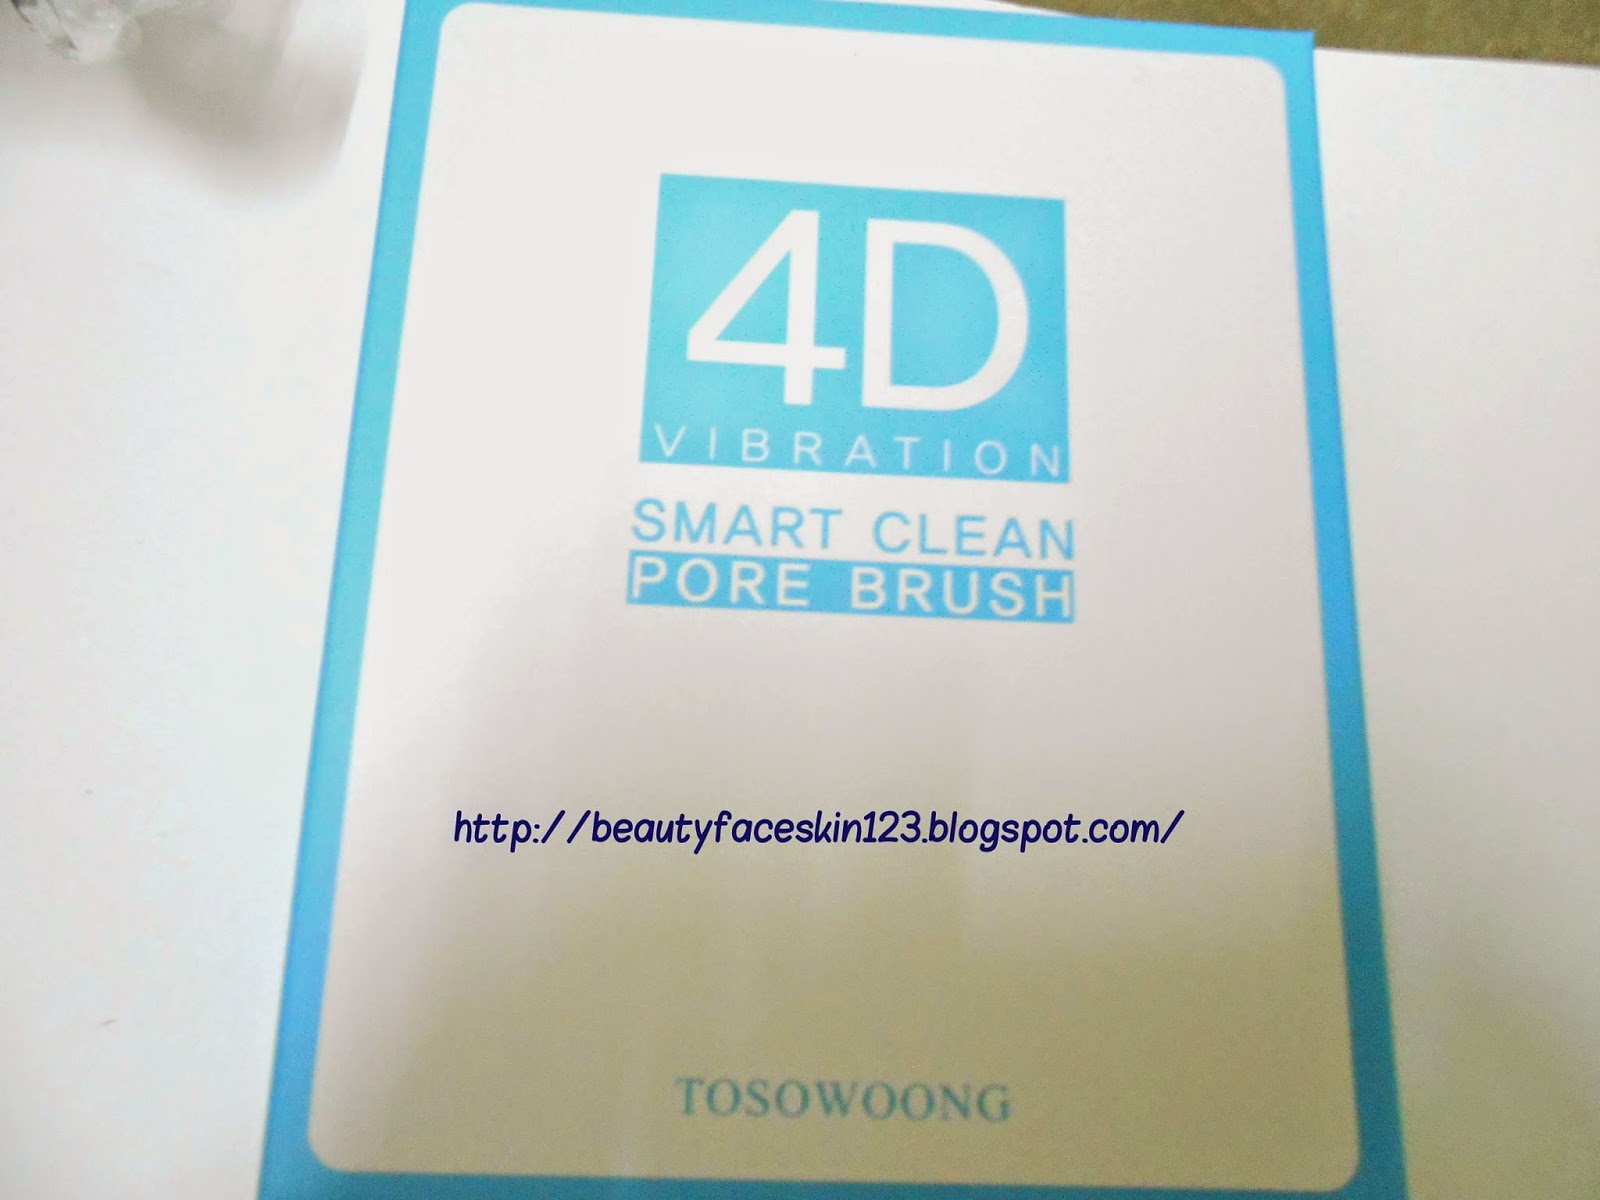 TOSOWOONG 4D VIBRATION PORE BRUSH